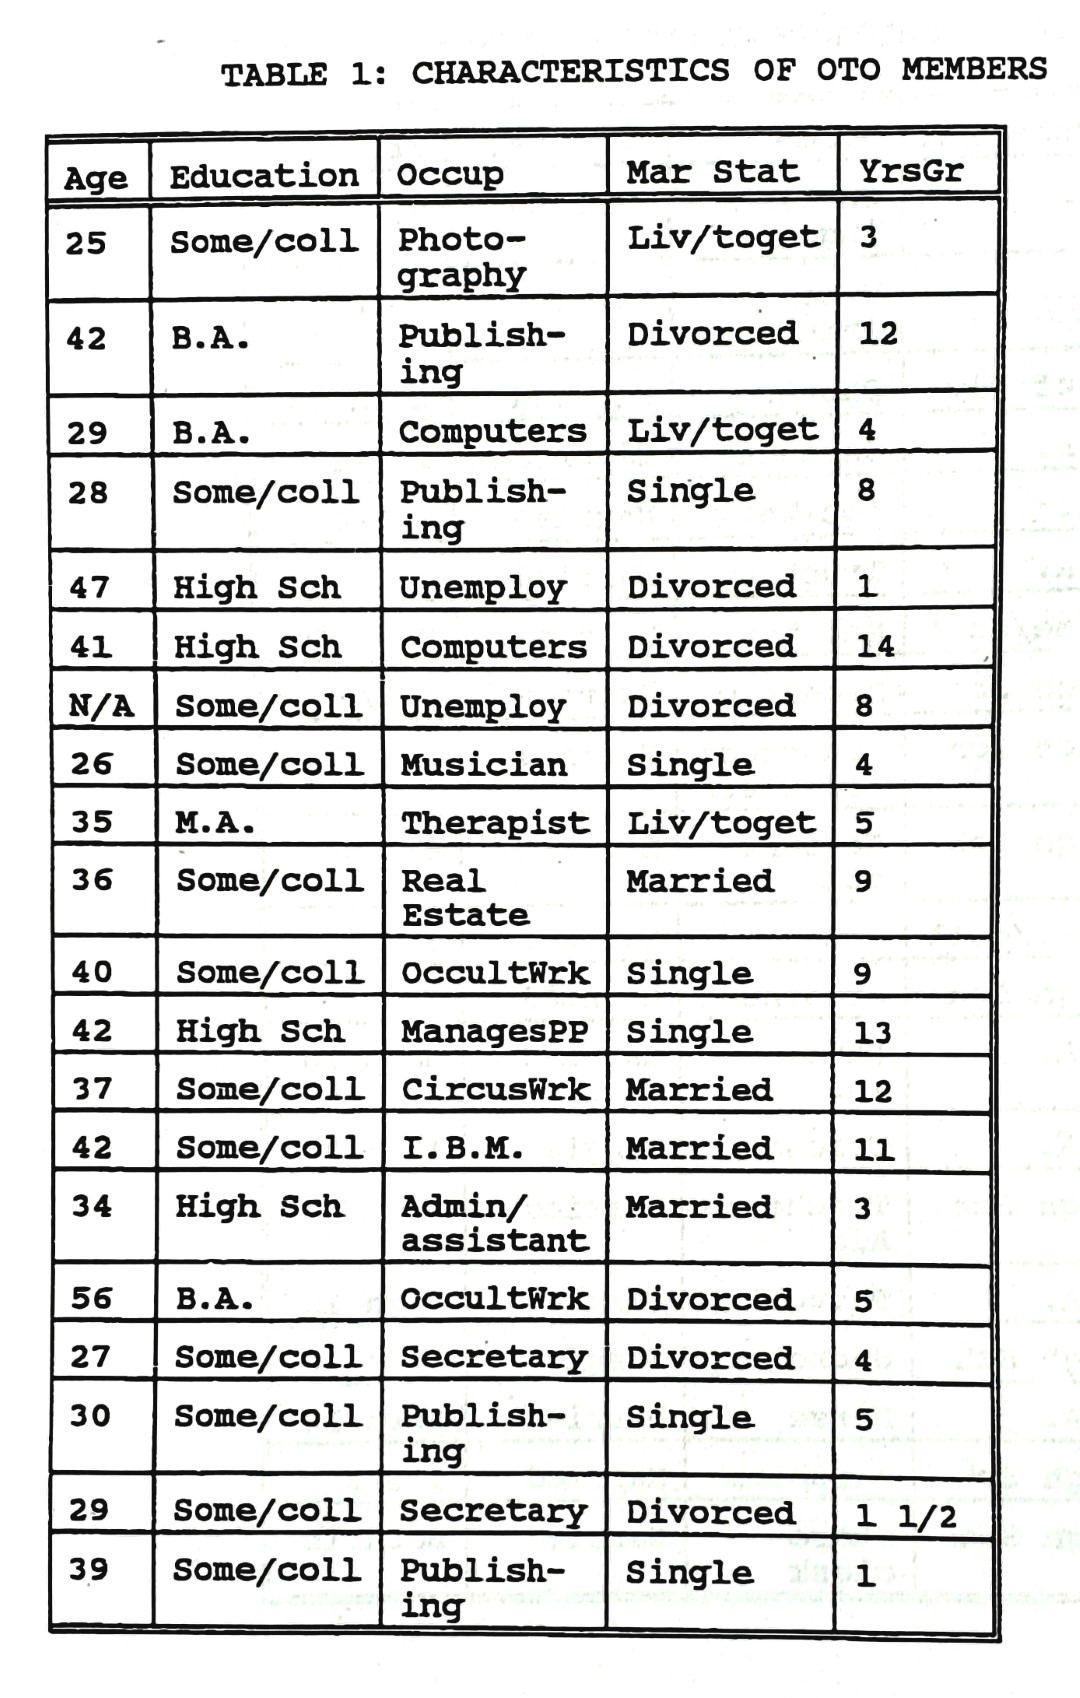 Claudia Kowalchyk, A study of two 'deviant' religious groups. The Assemblies of God and the Ordo Templi Orientis, NY 1994, page 444